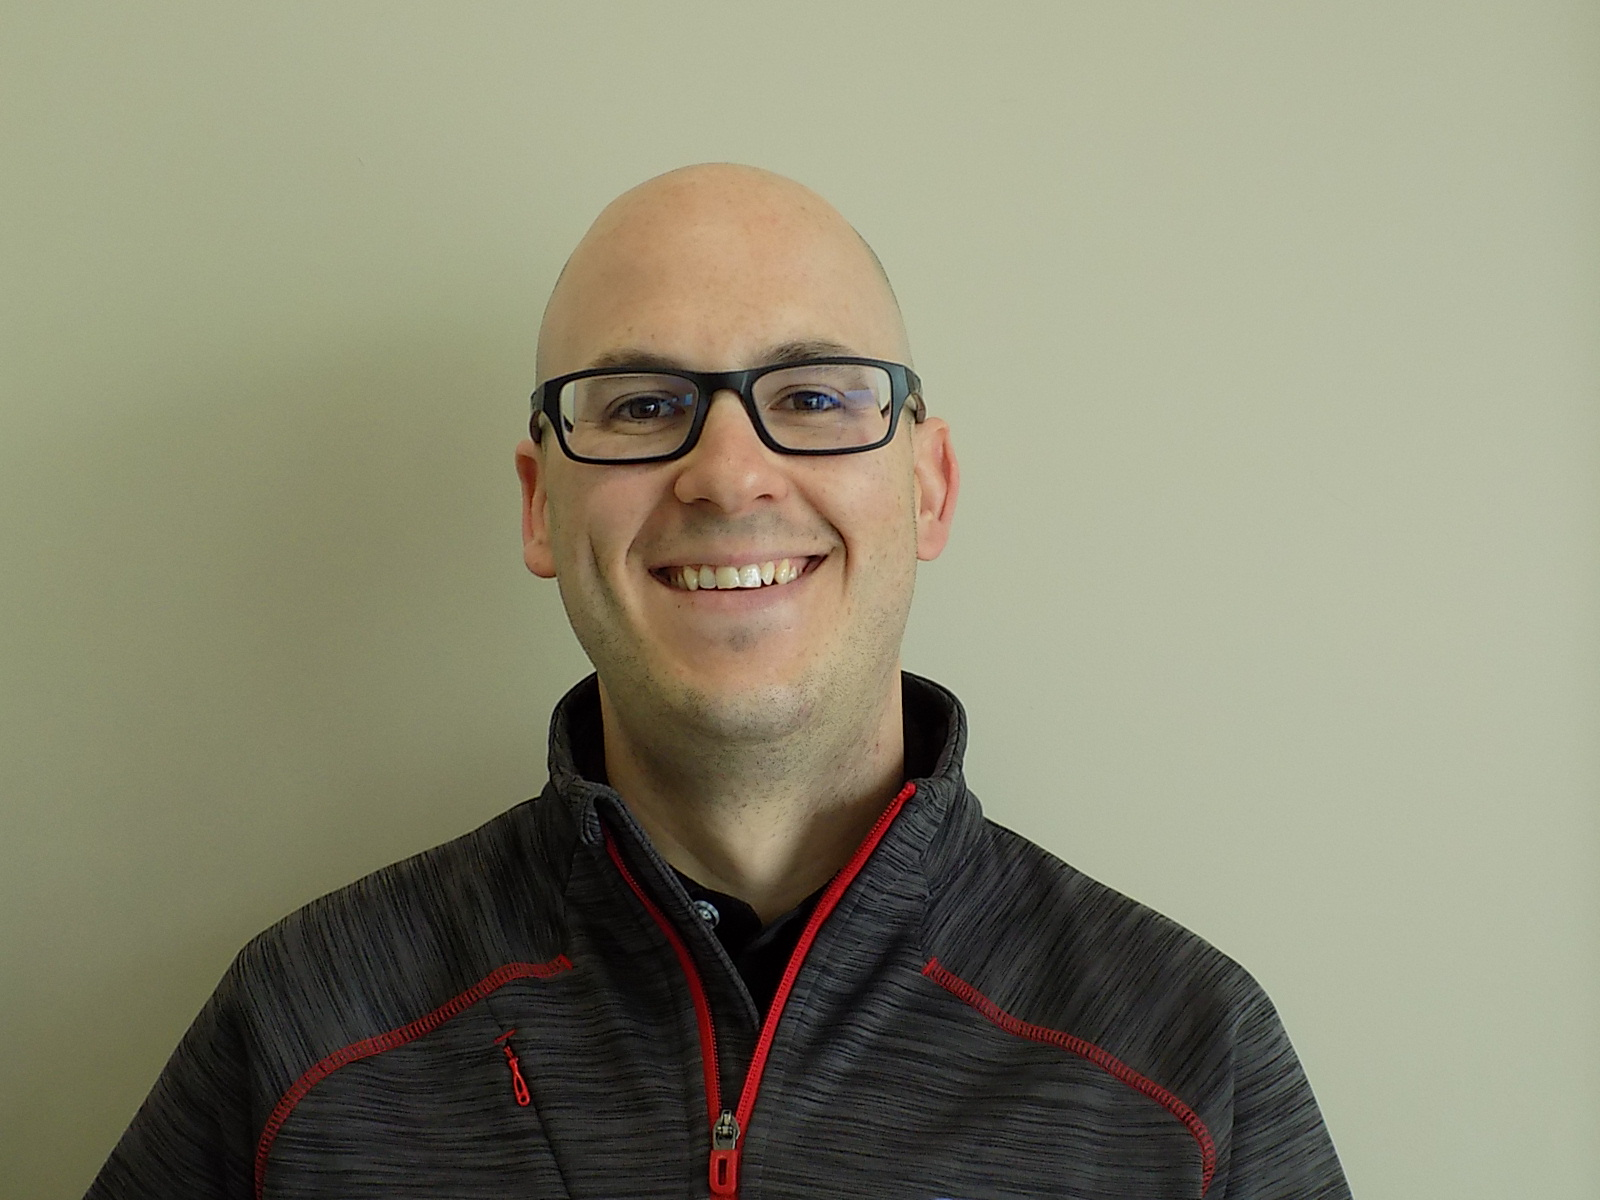 Kyle Sehn - Service/Parts Manager